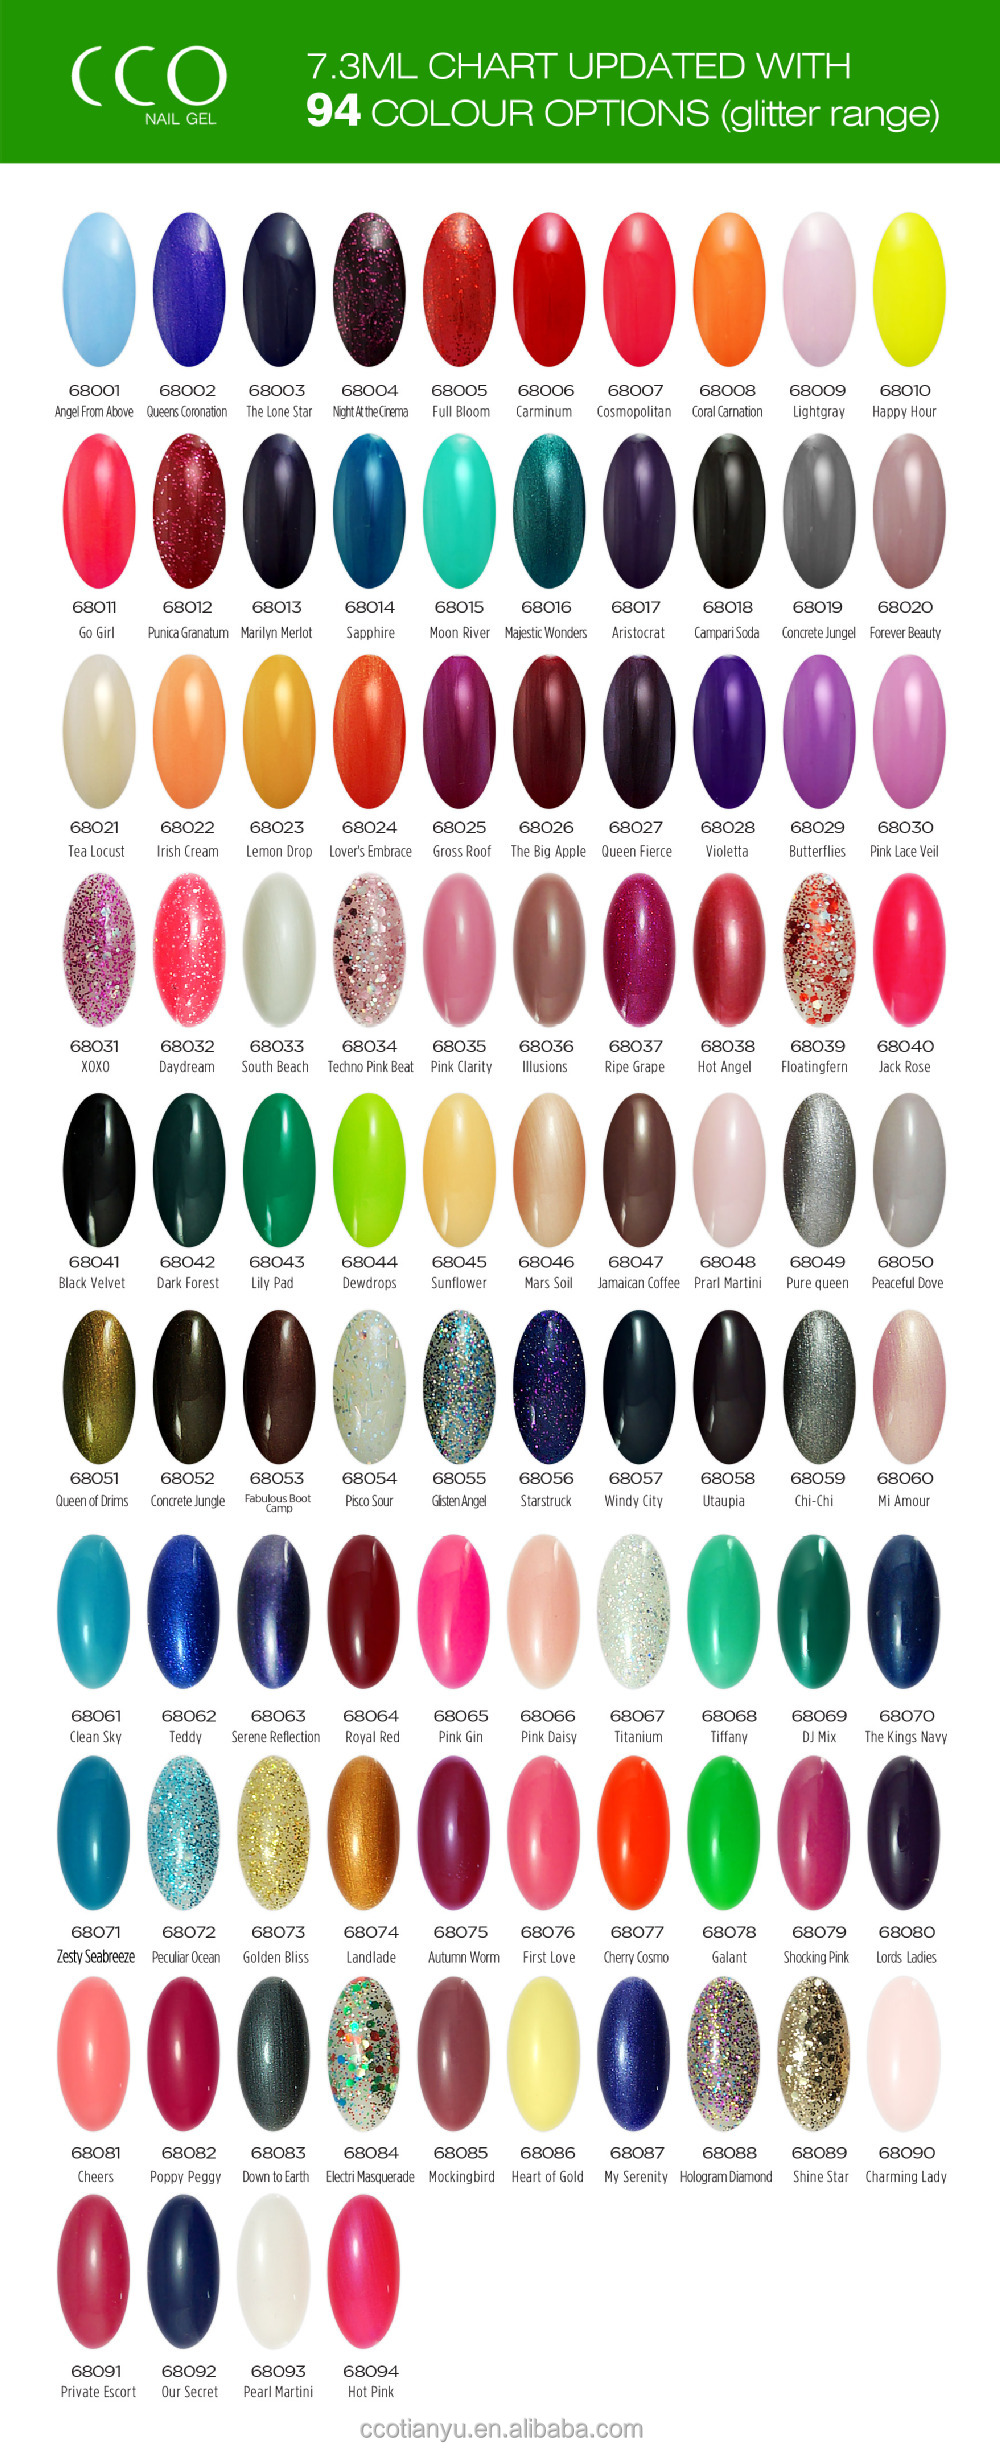 The Cco Sensual Gel Nail Kit Wholesale Nail Polish Manicure Sets ...